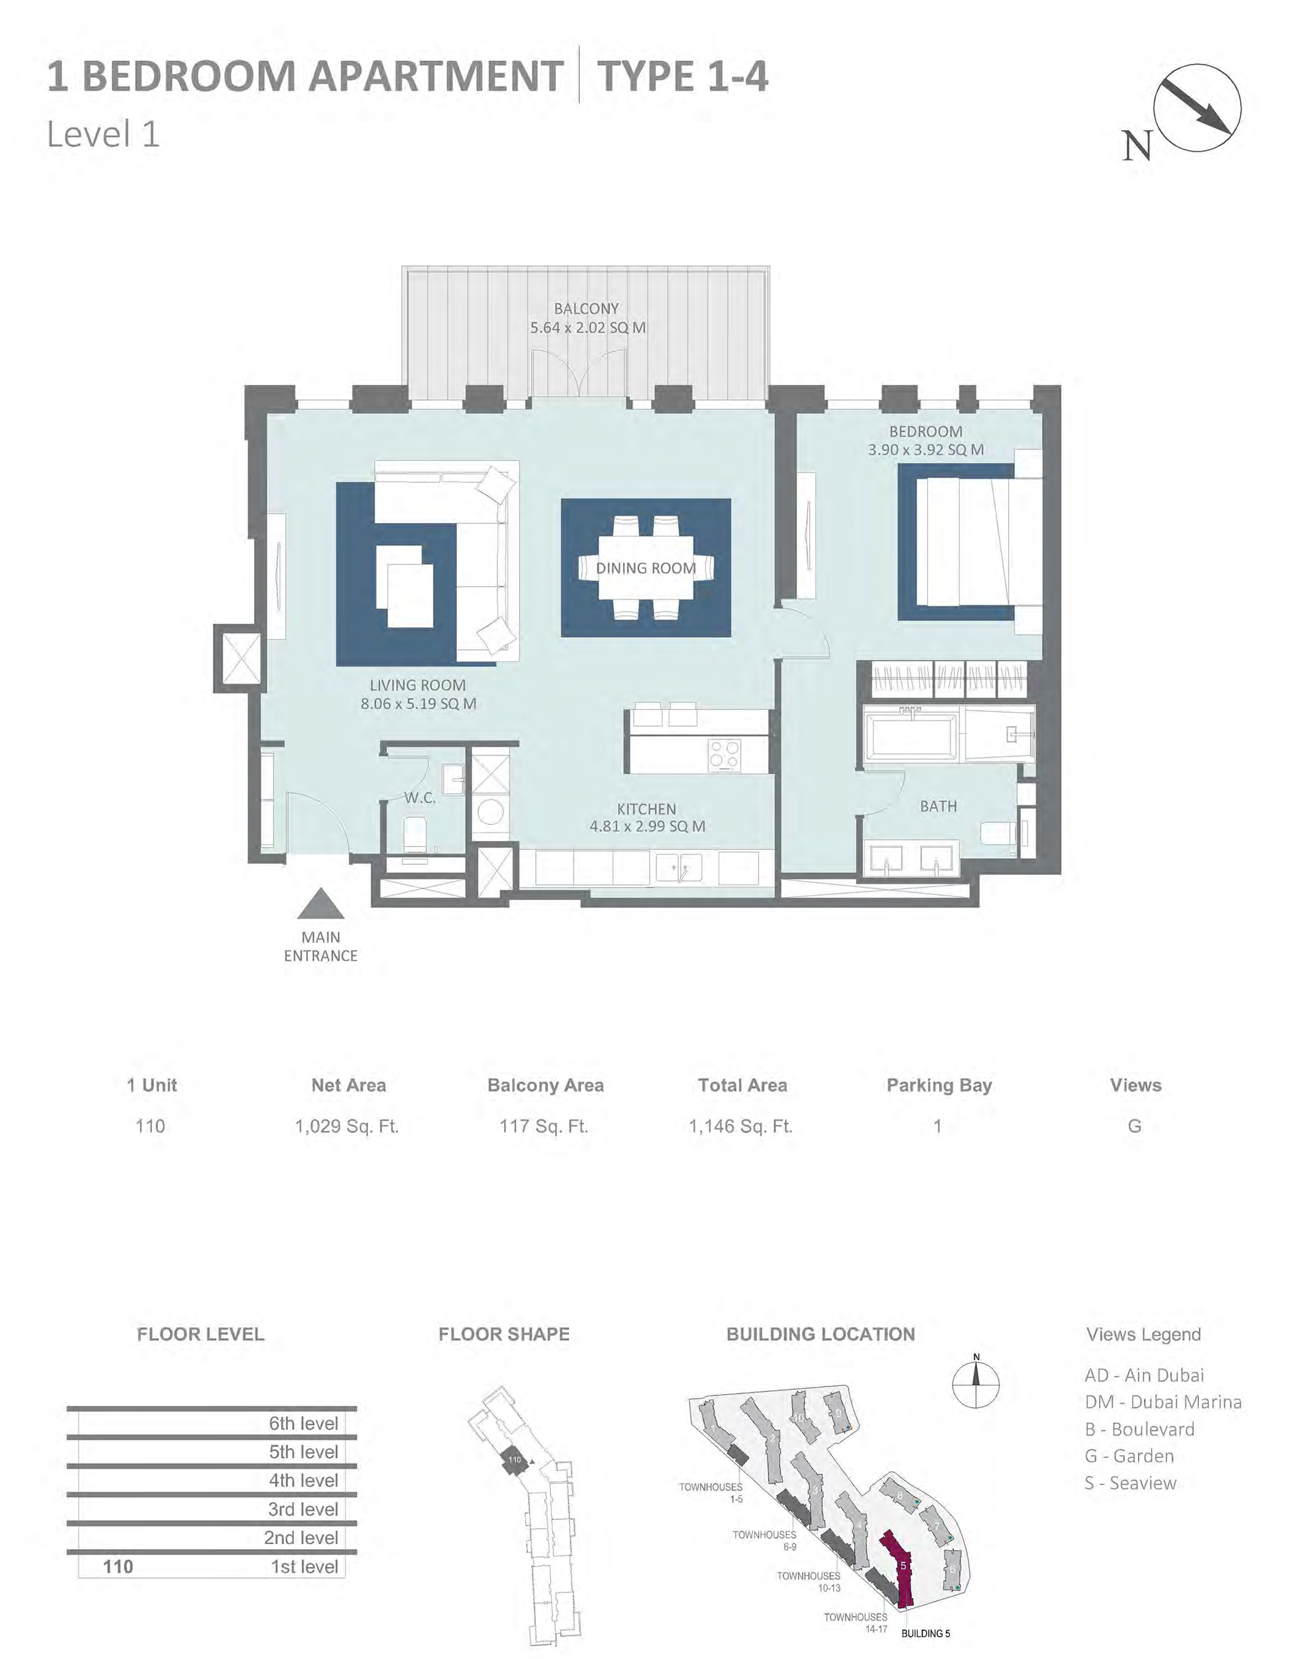 Building 5 - 1 Bedroom Type 1-4 Level 1 , Size 1029    sq. ft.